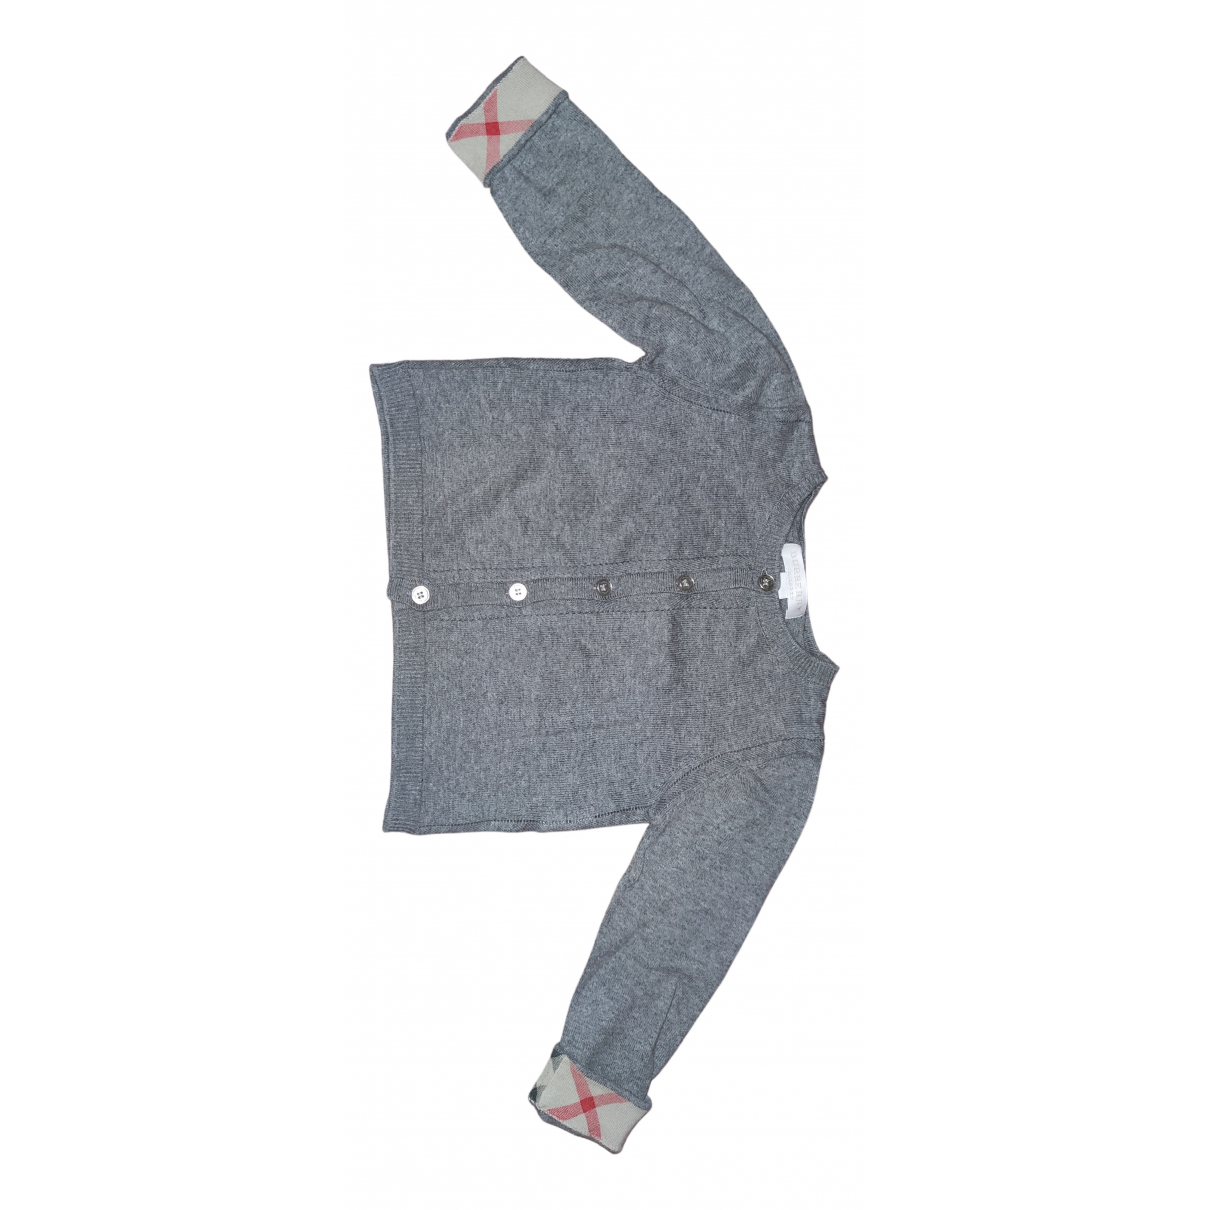 Burberry N Grey Cotton Knitwear for Kids 2 years - until 34 inches UK